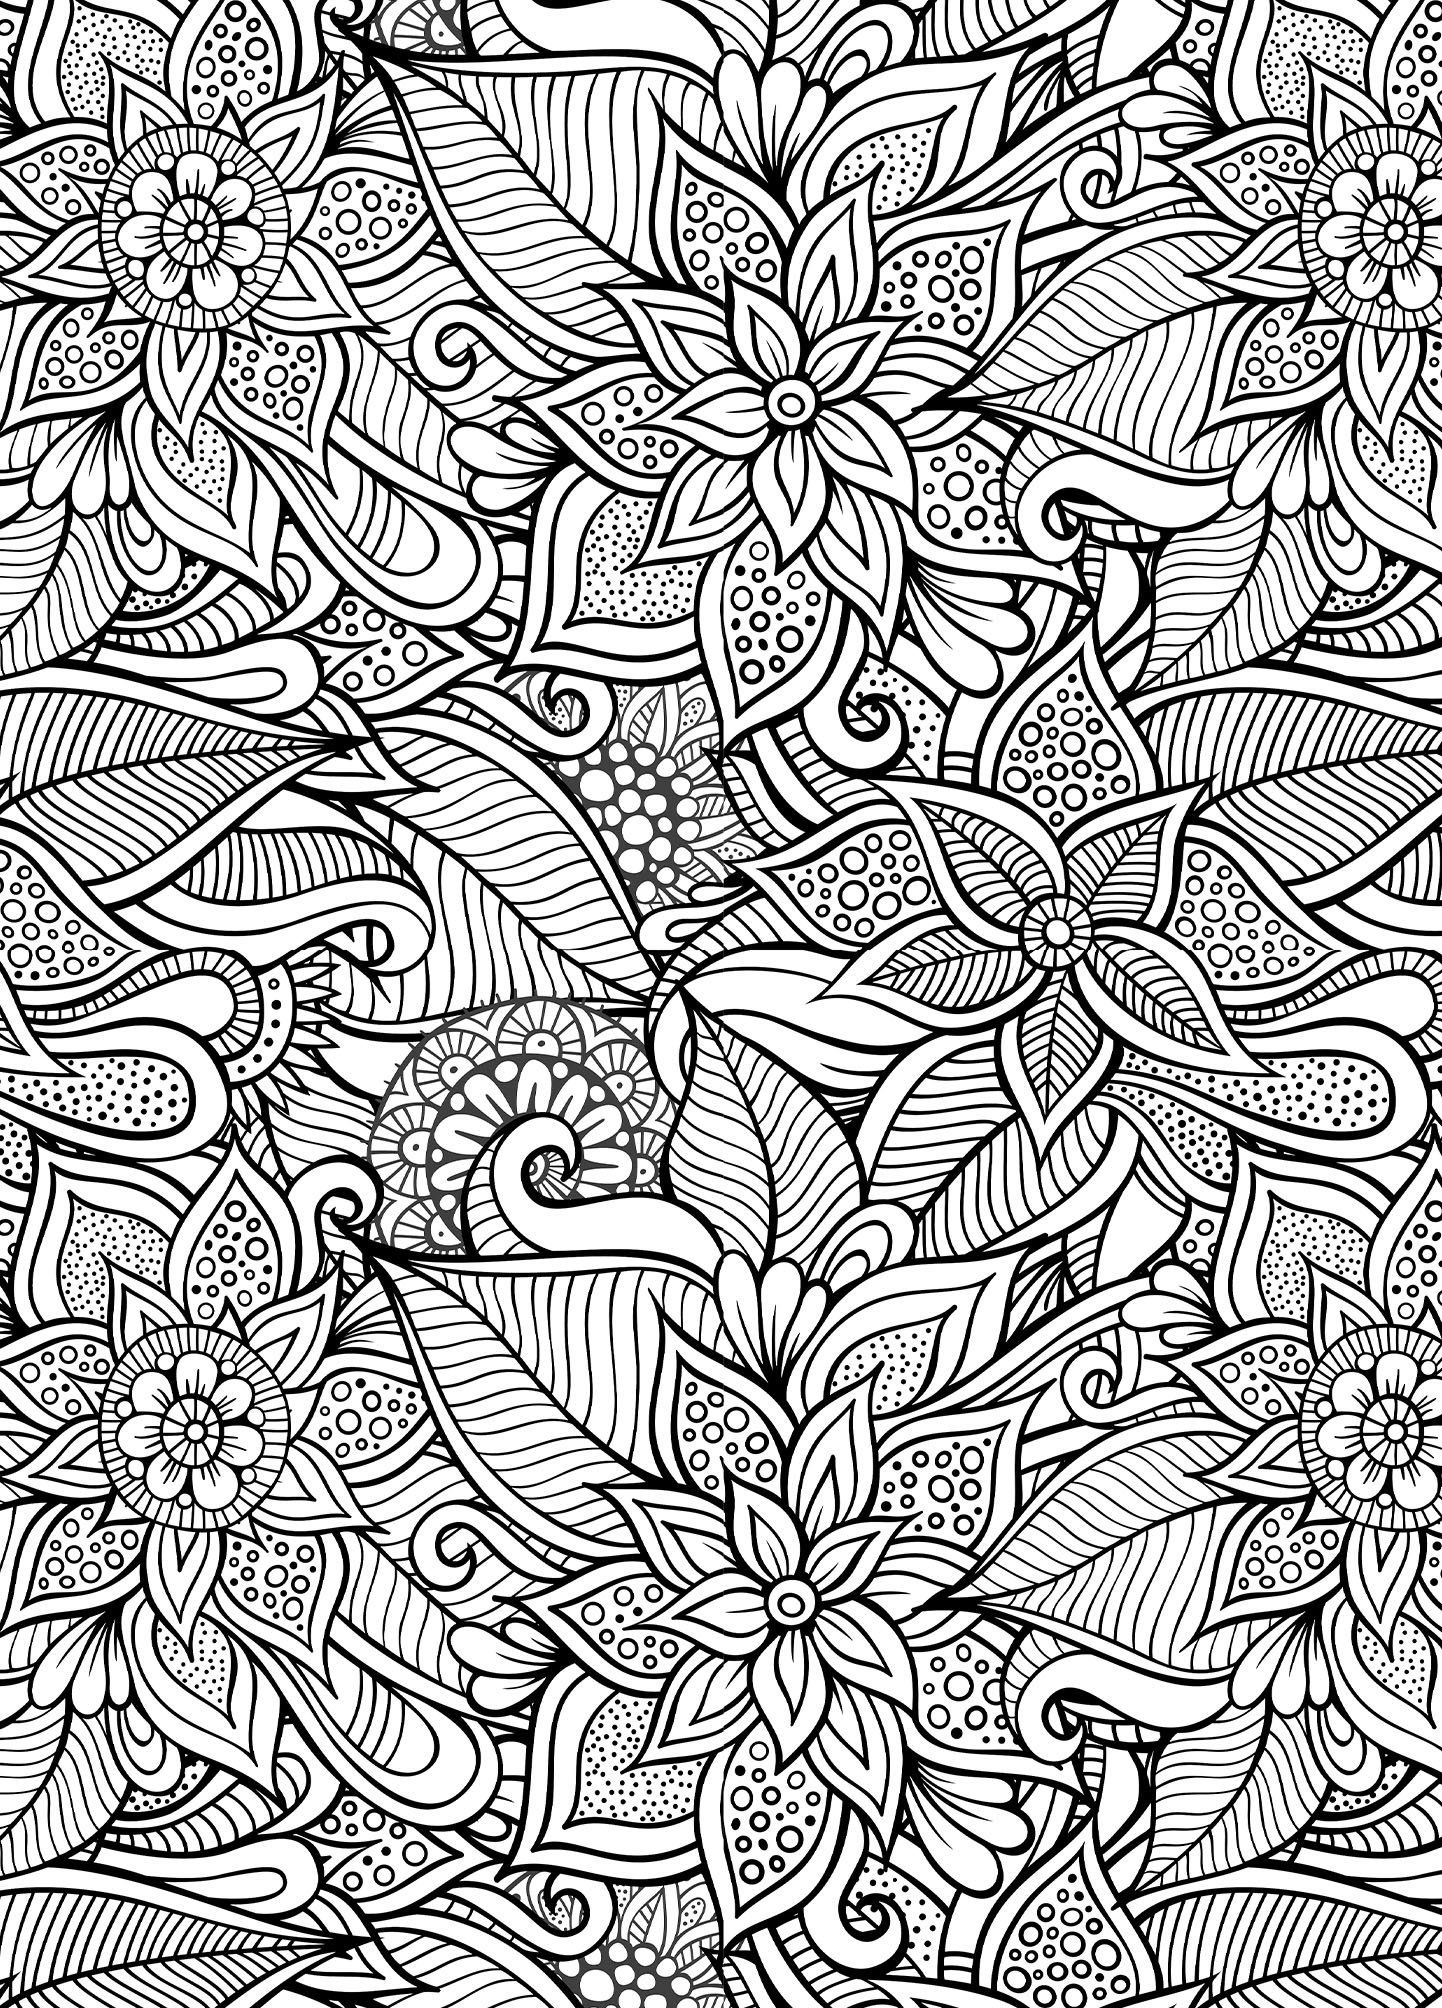 - Buy The One And Only Enormous Colouring Book For Adults (One And